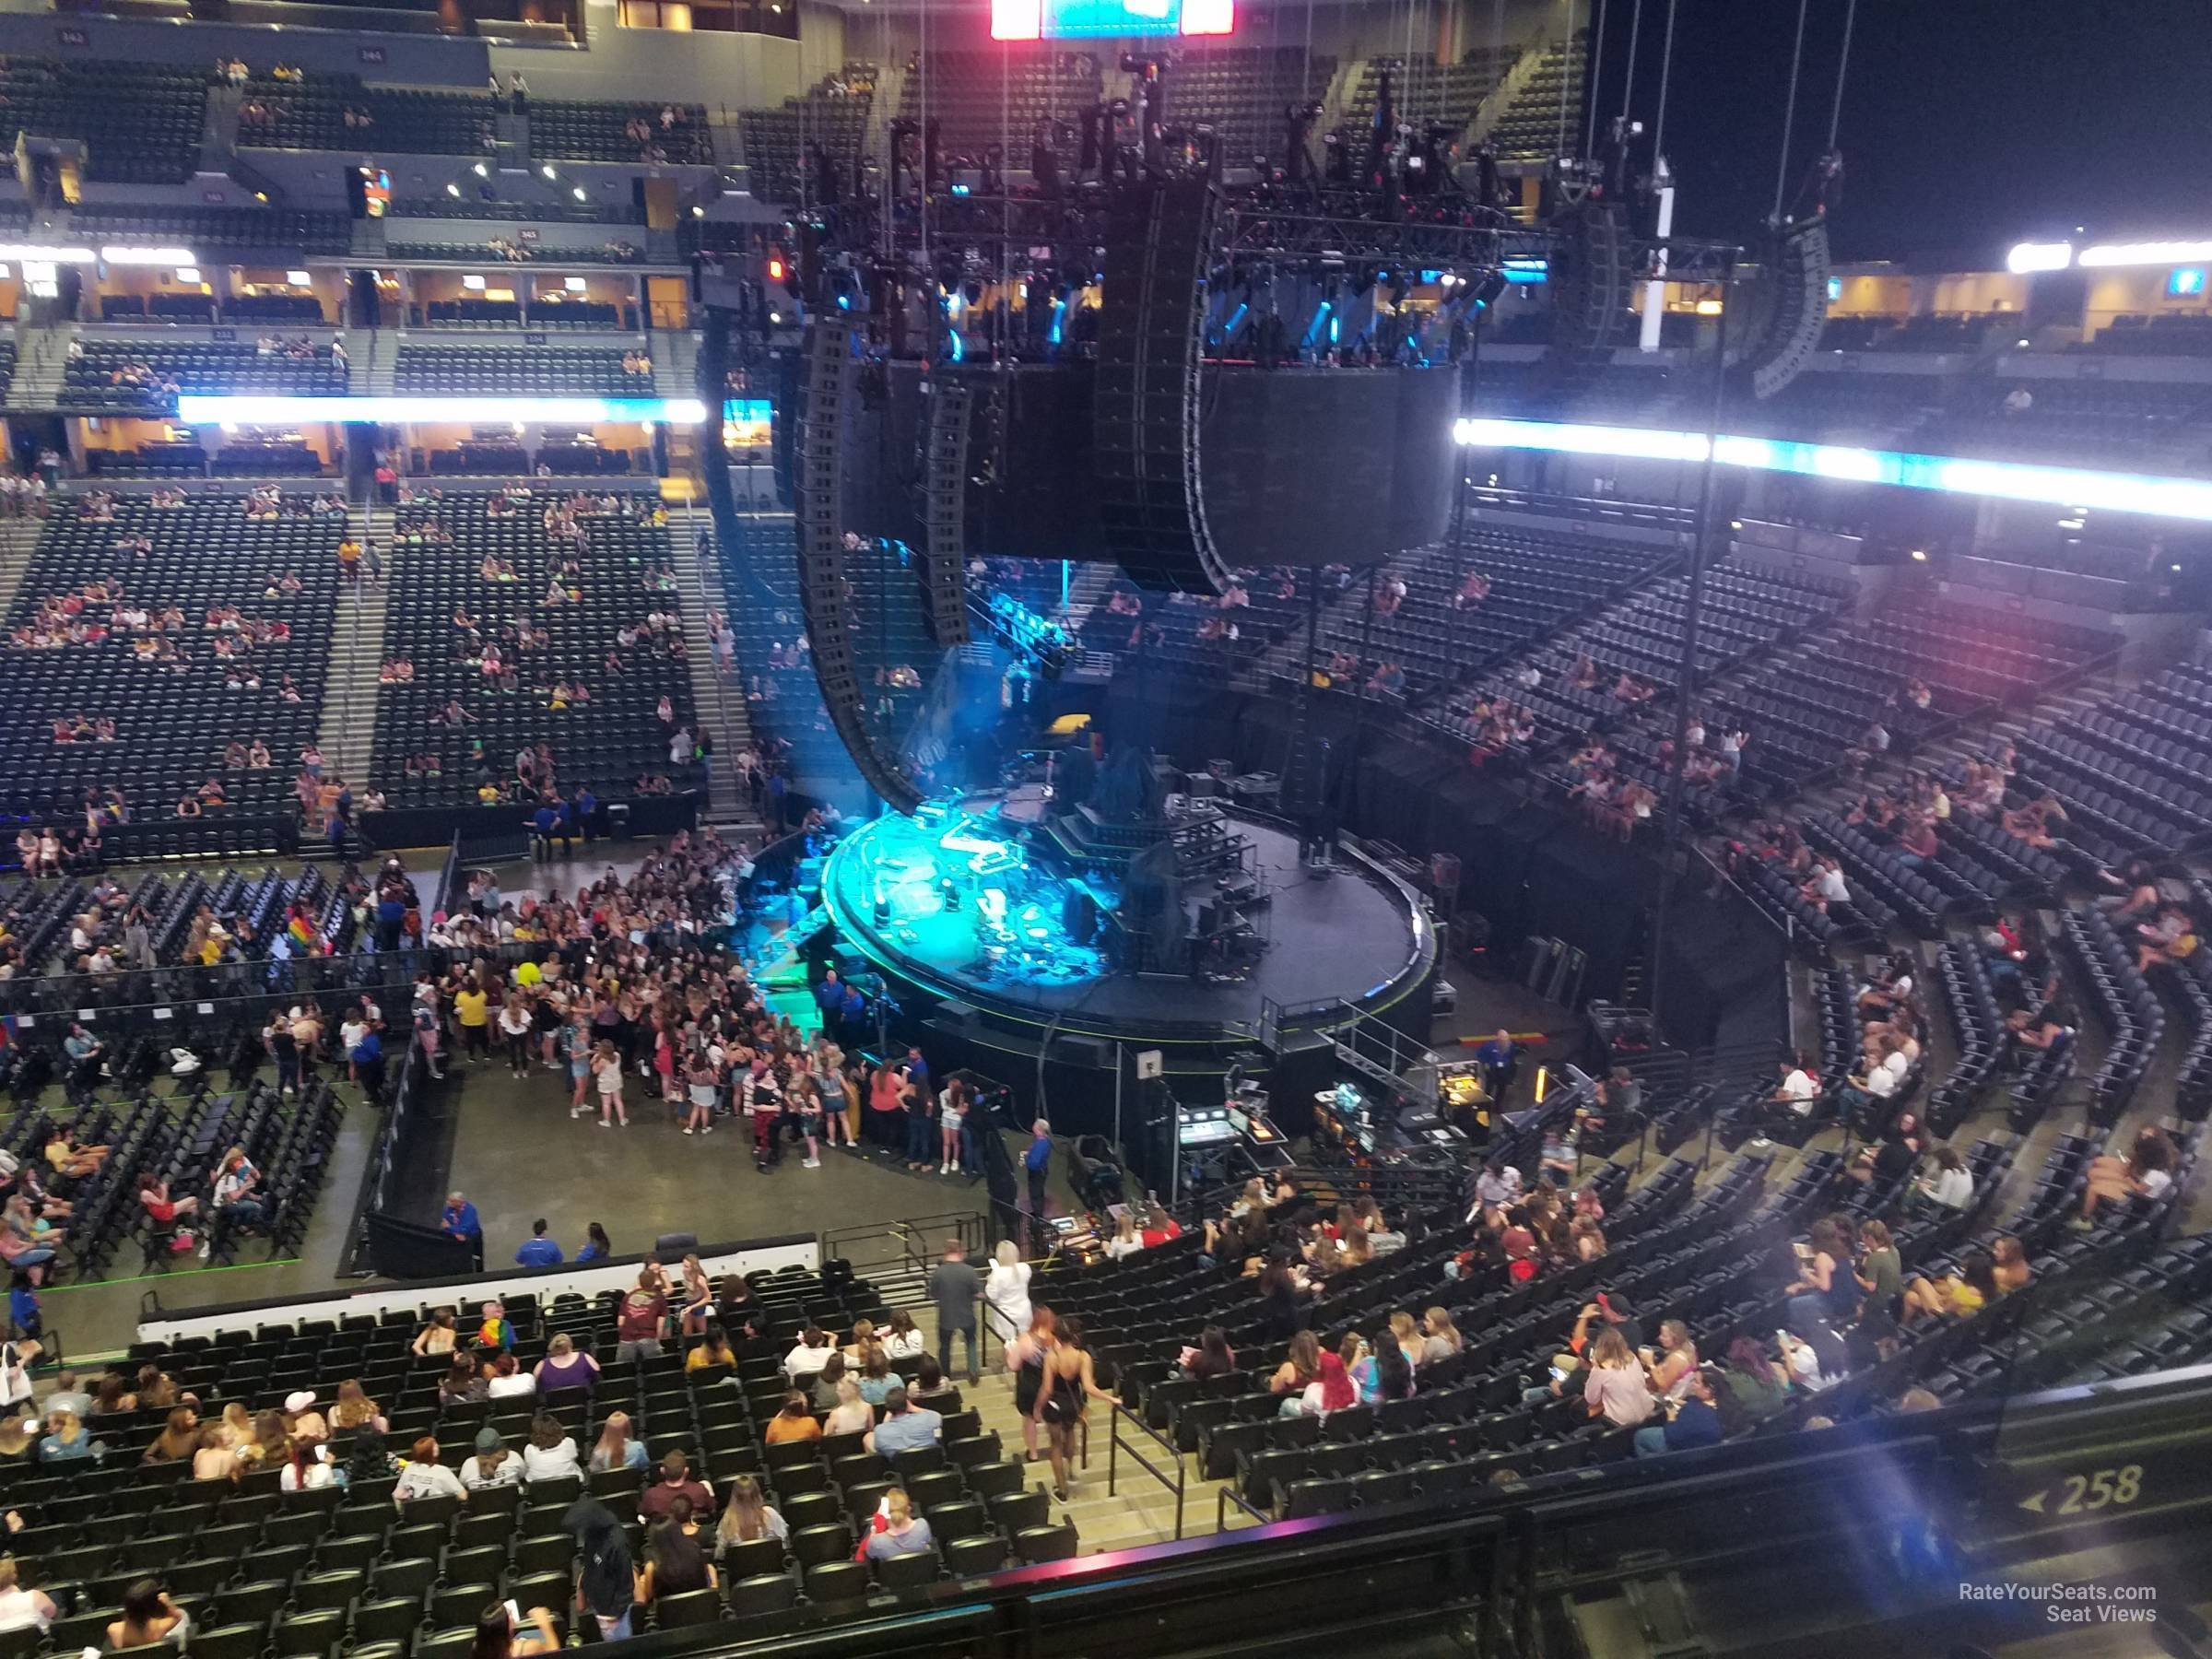 Pepsi Center: Pepsi Center Section 258 Concert Seating